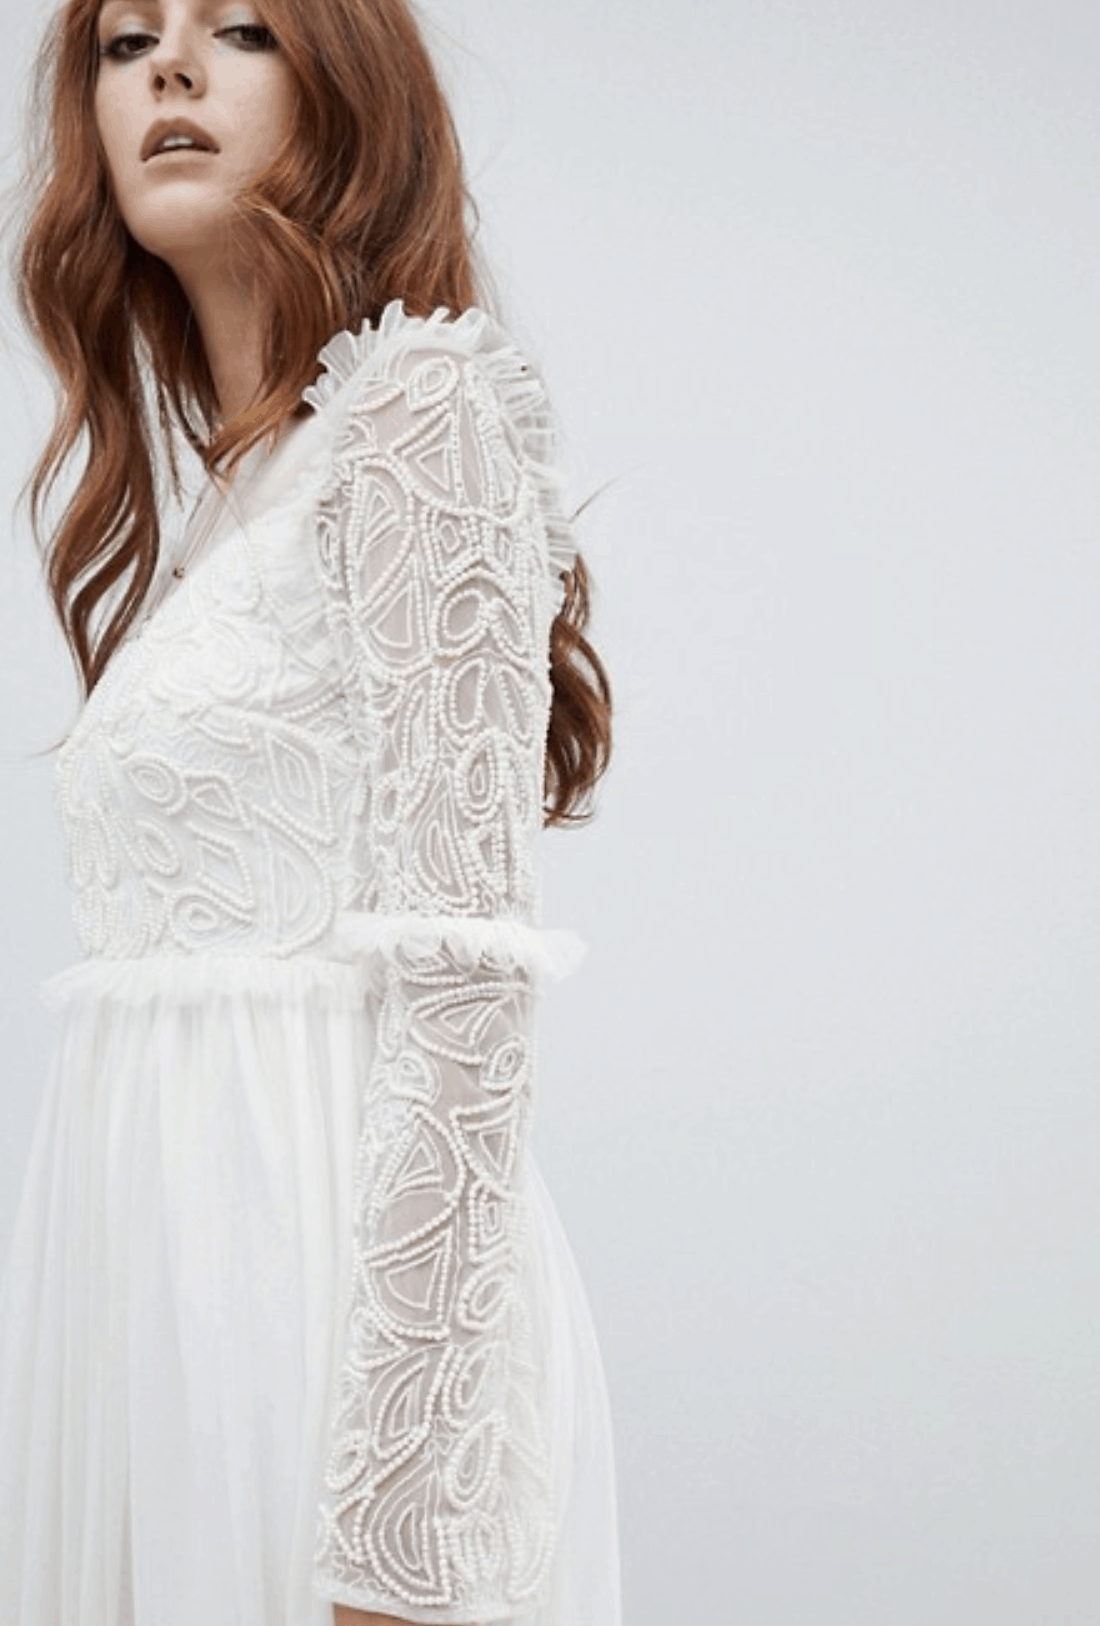 97b6ecc35b4a Cheap Affordable Bridal Gowns and Wedding Dresses Amelia Rose Embellished  Long Sleeve Dress Ivory